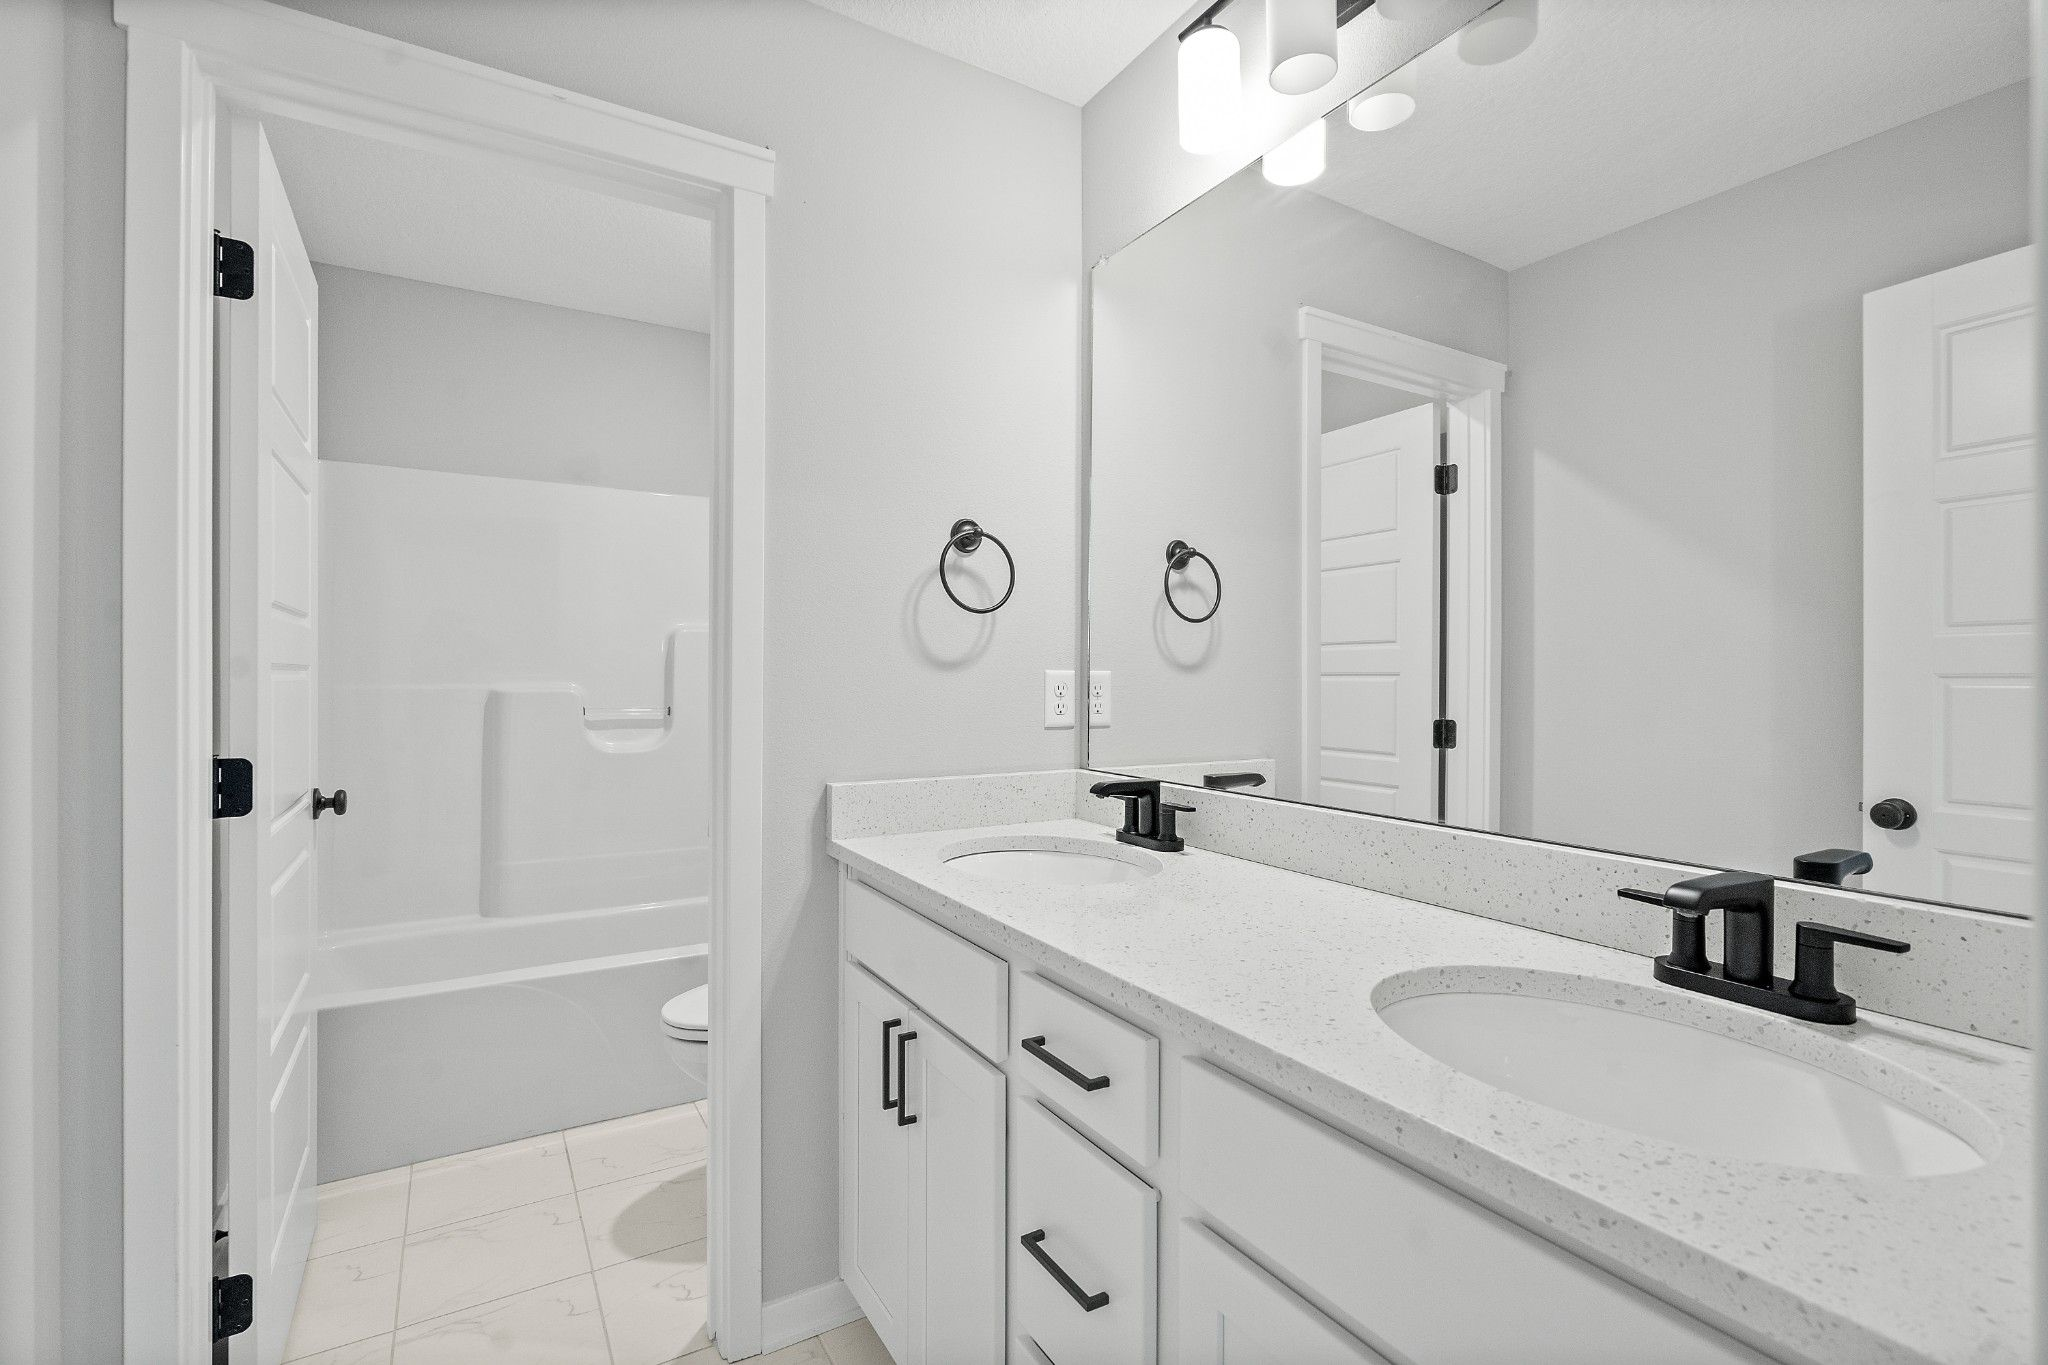 Bathroom featured in the Woodbridge - IA By Summit Homes in Des Moines, IA